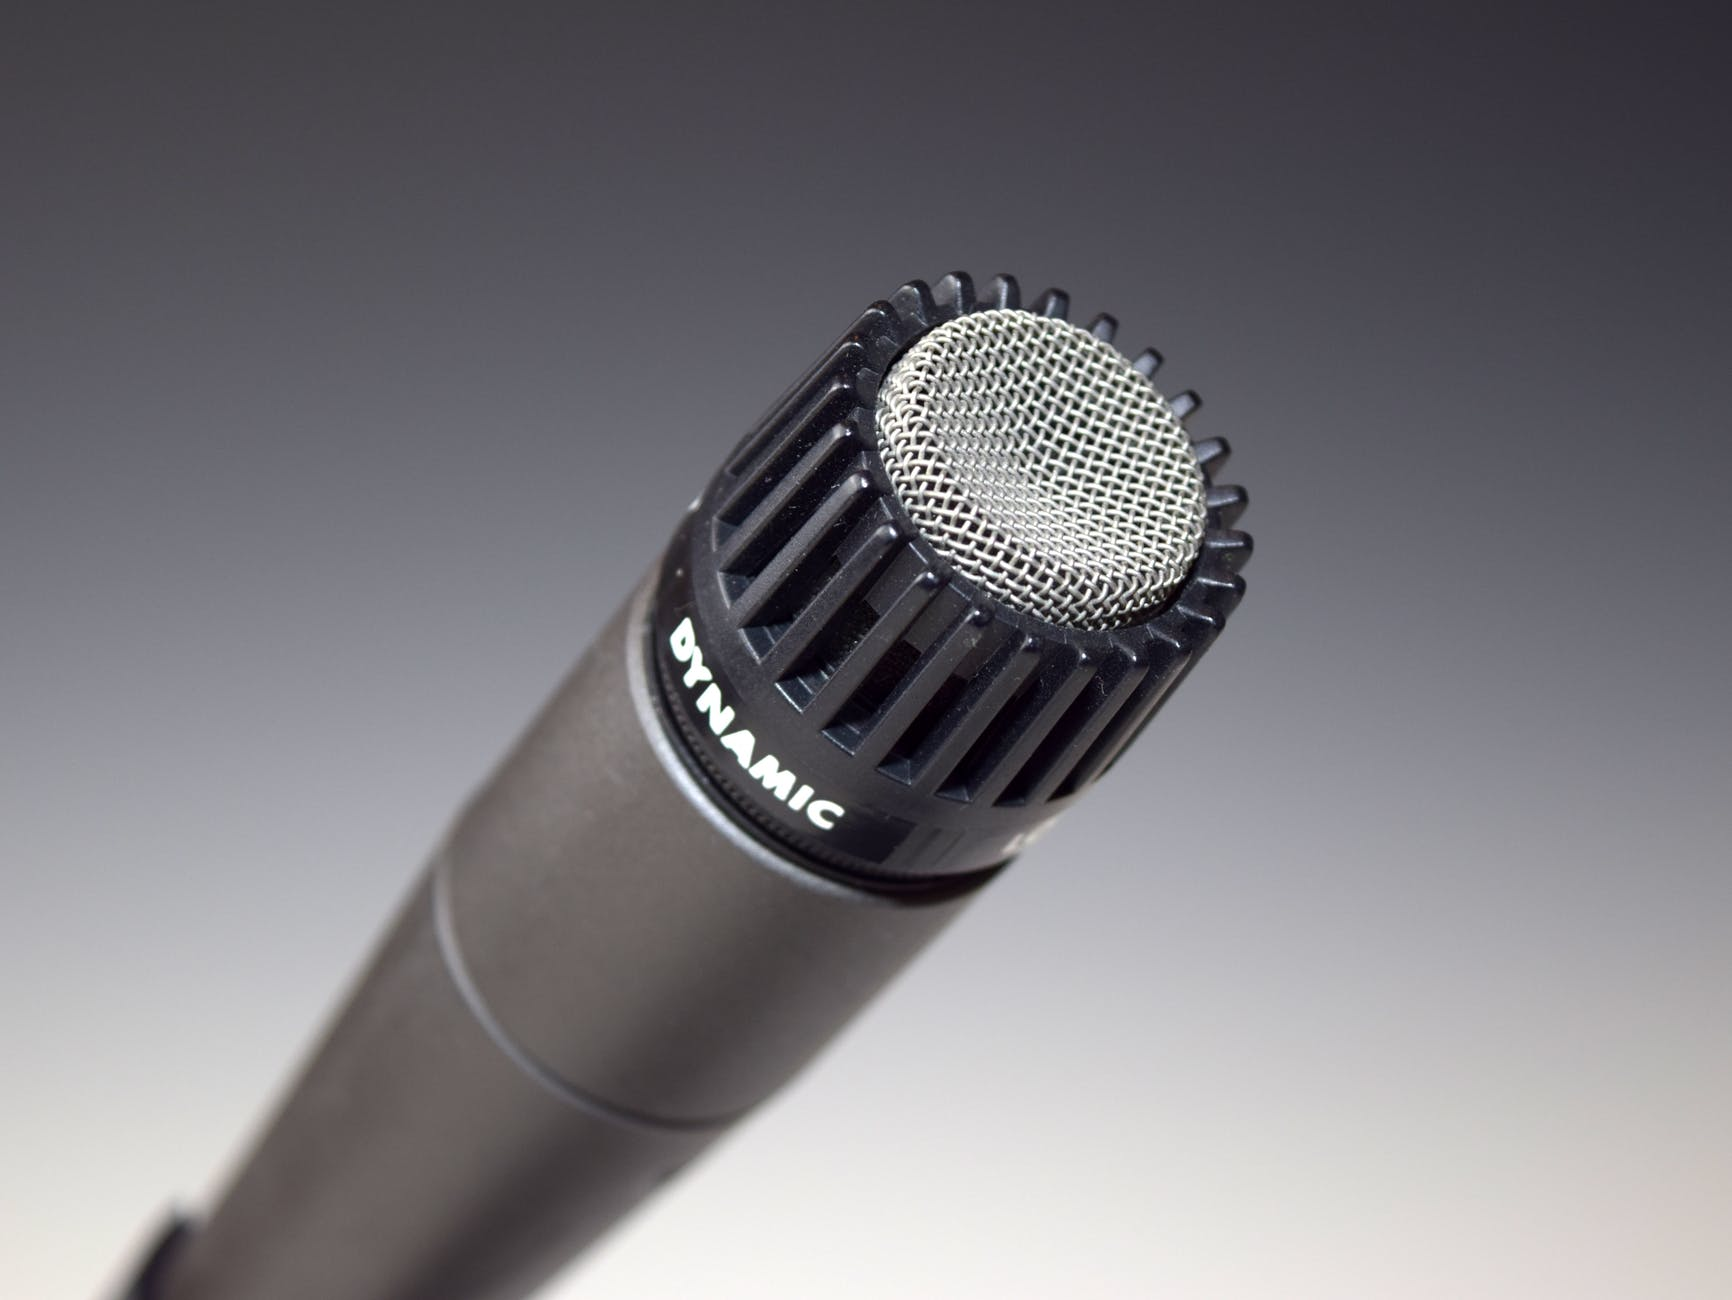 silver and black dynamic metal microphone